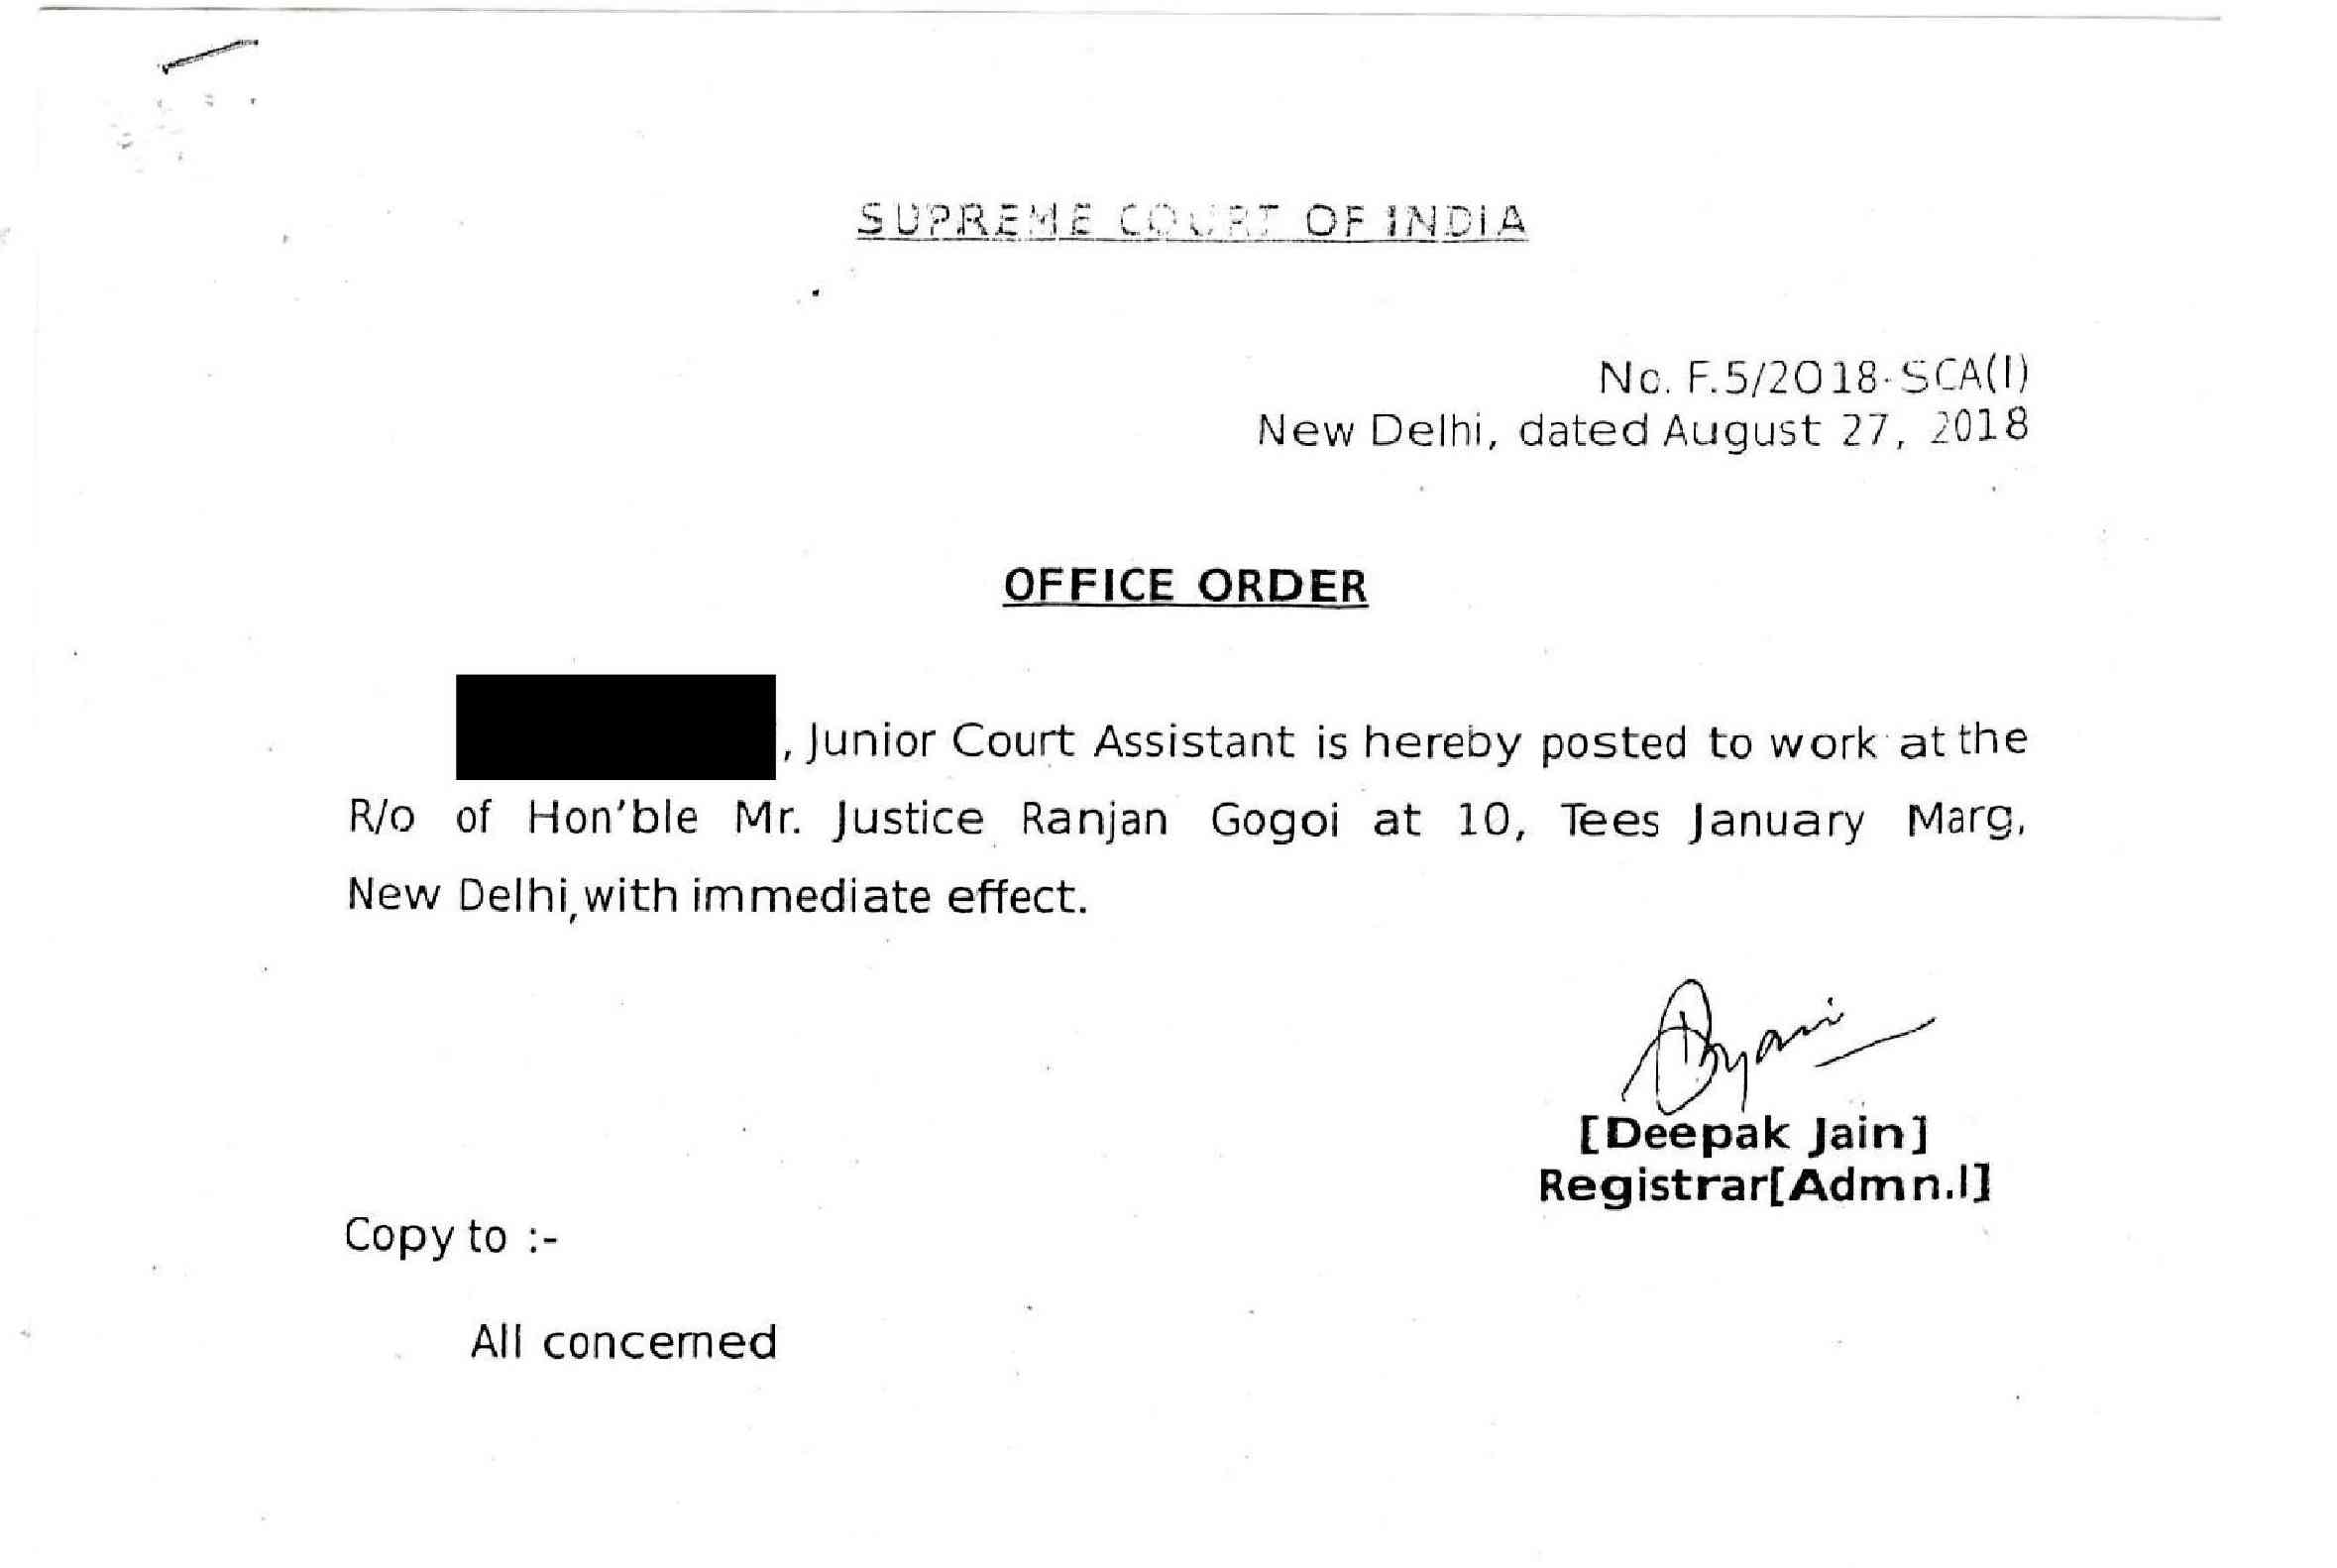 The transfer order dated August 27.